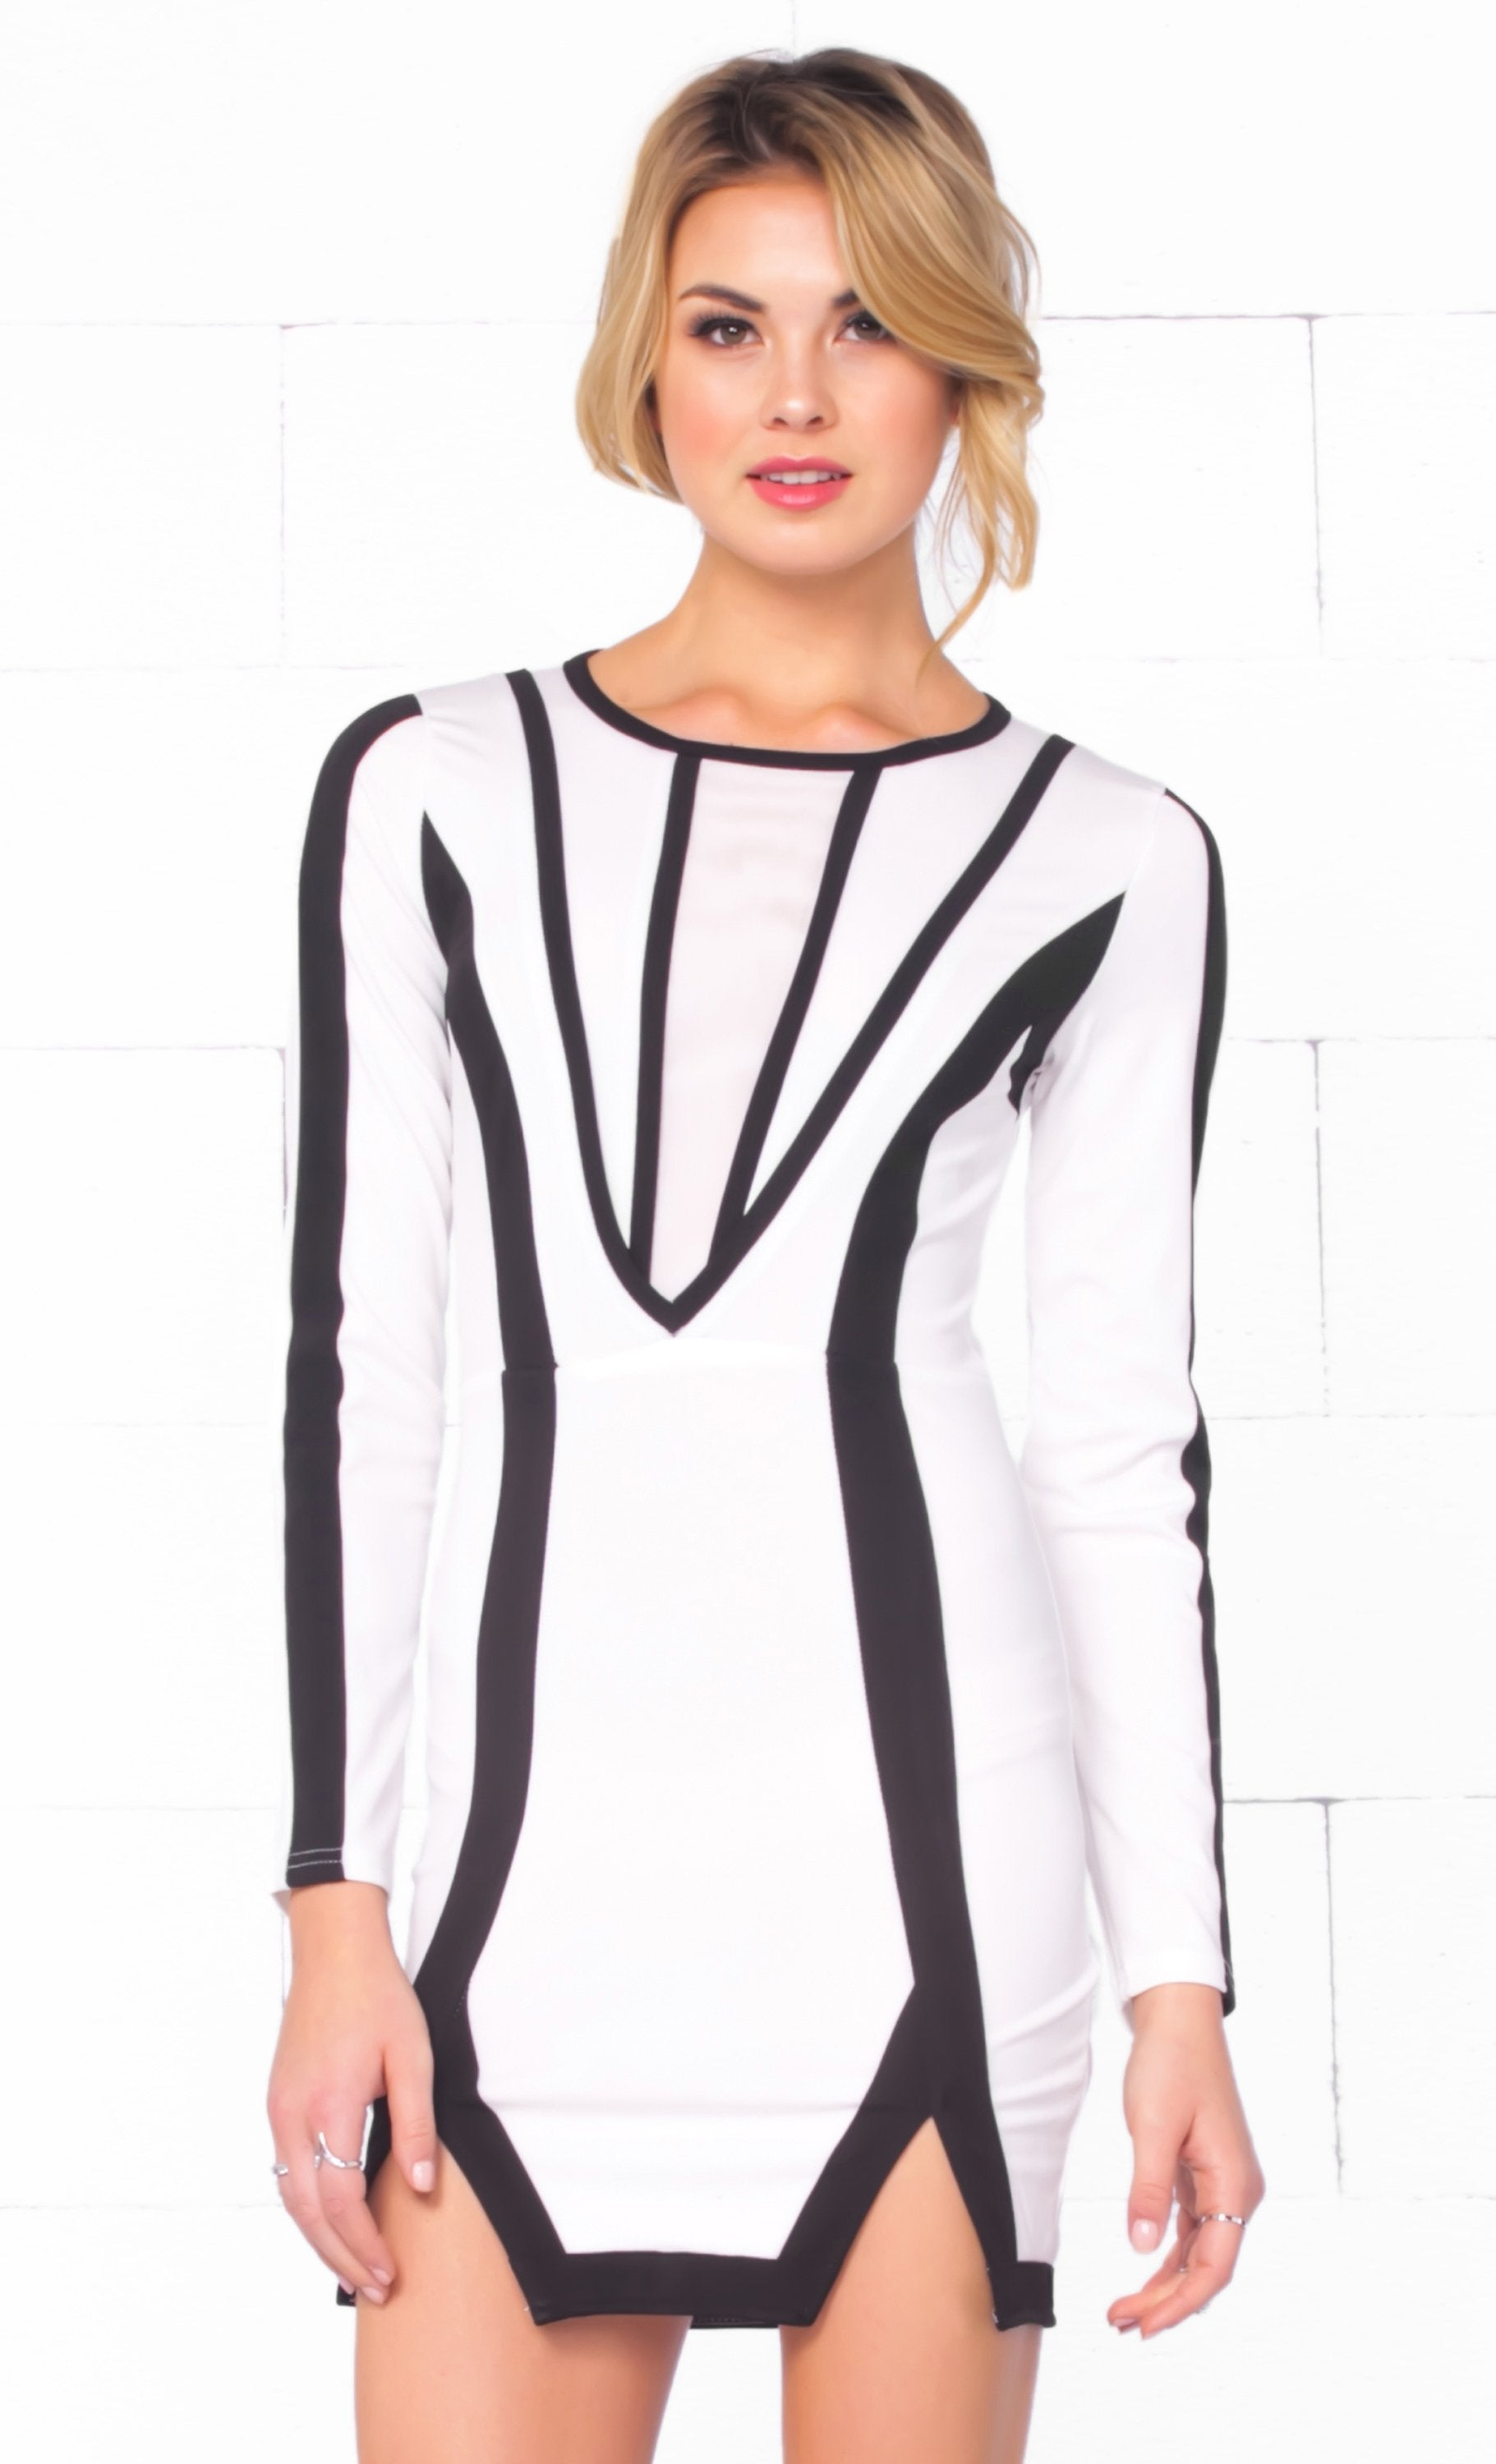 Indie XO Love Fool White Black Scoop Neck Long Sleeve Contrast Slit Hem Bodycon Mini Dress - Just Ours! - Sold Out